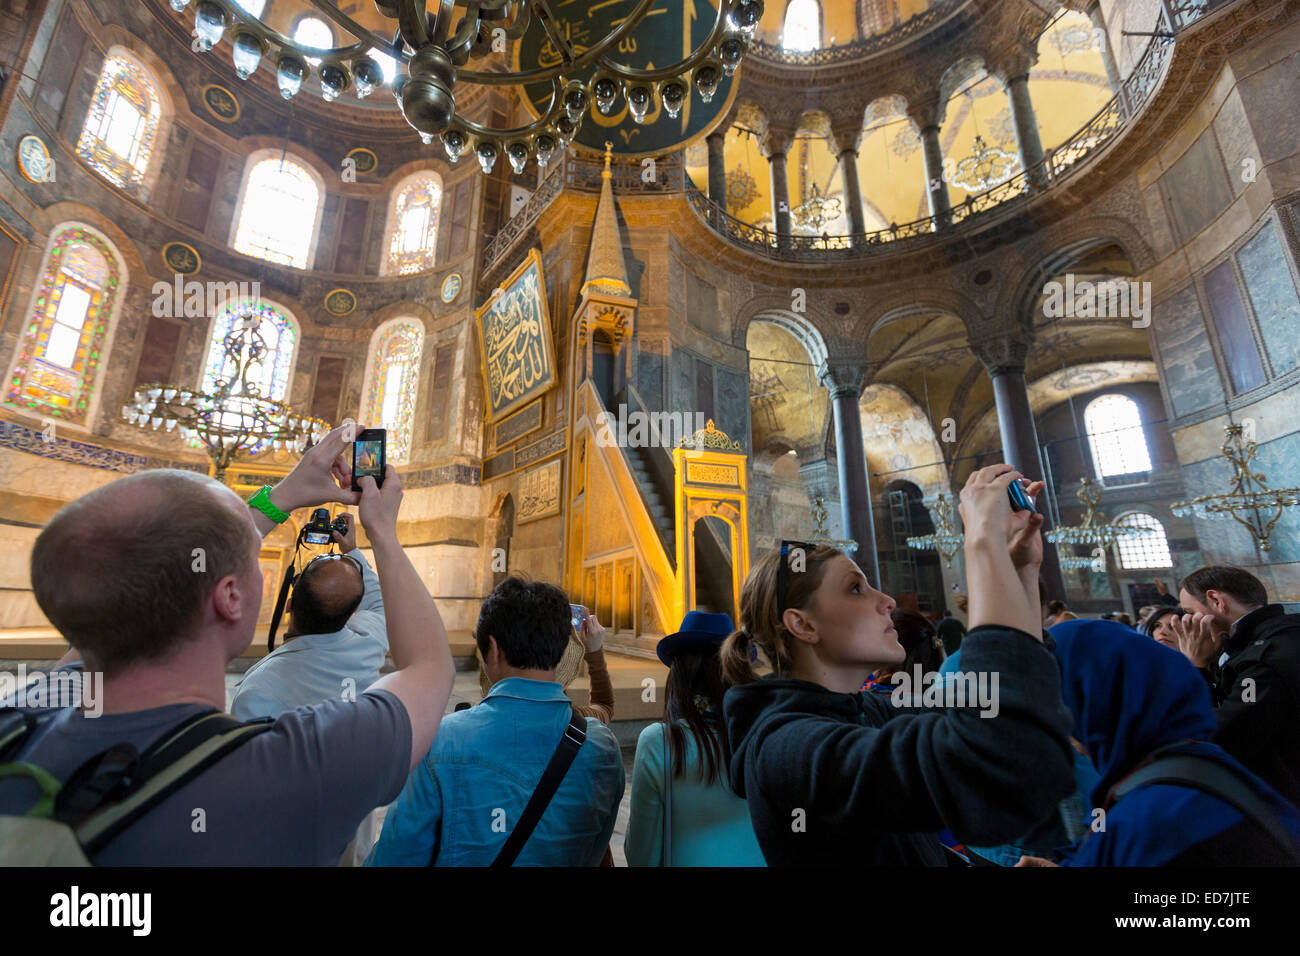 Tourists at Hagia Sophia, Ayasofya Muzesi, mosque museum using smartphones to take photographs in Istanbul, Republic - Stock Image